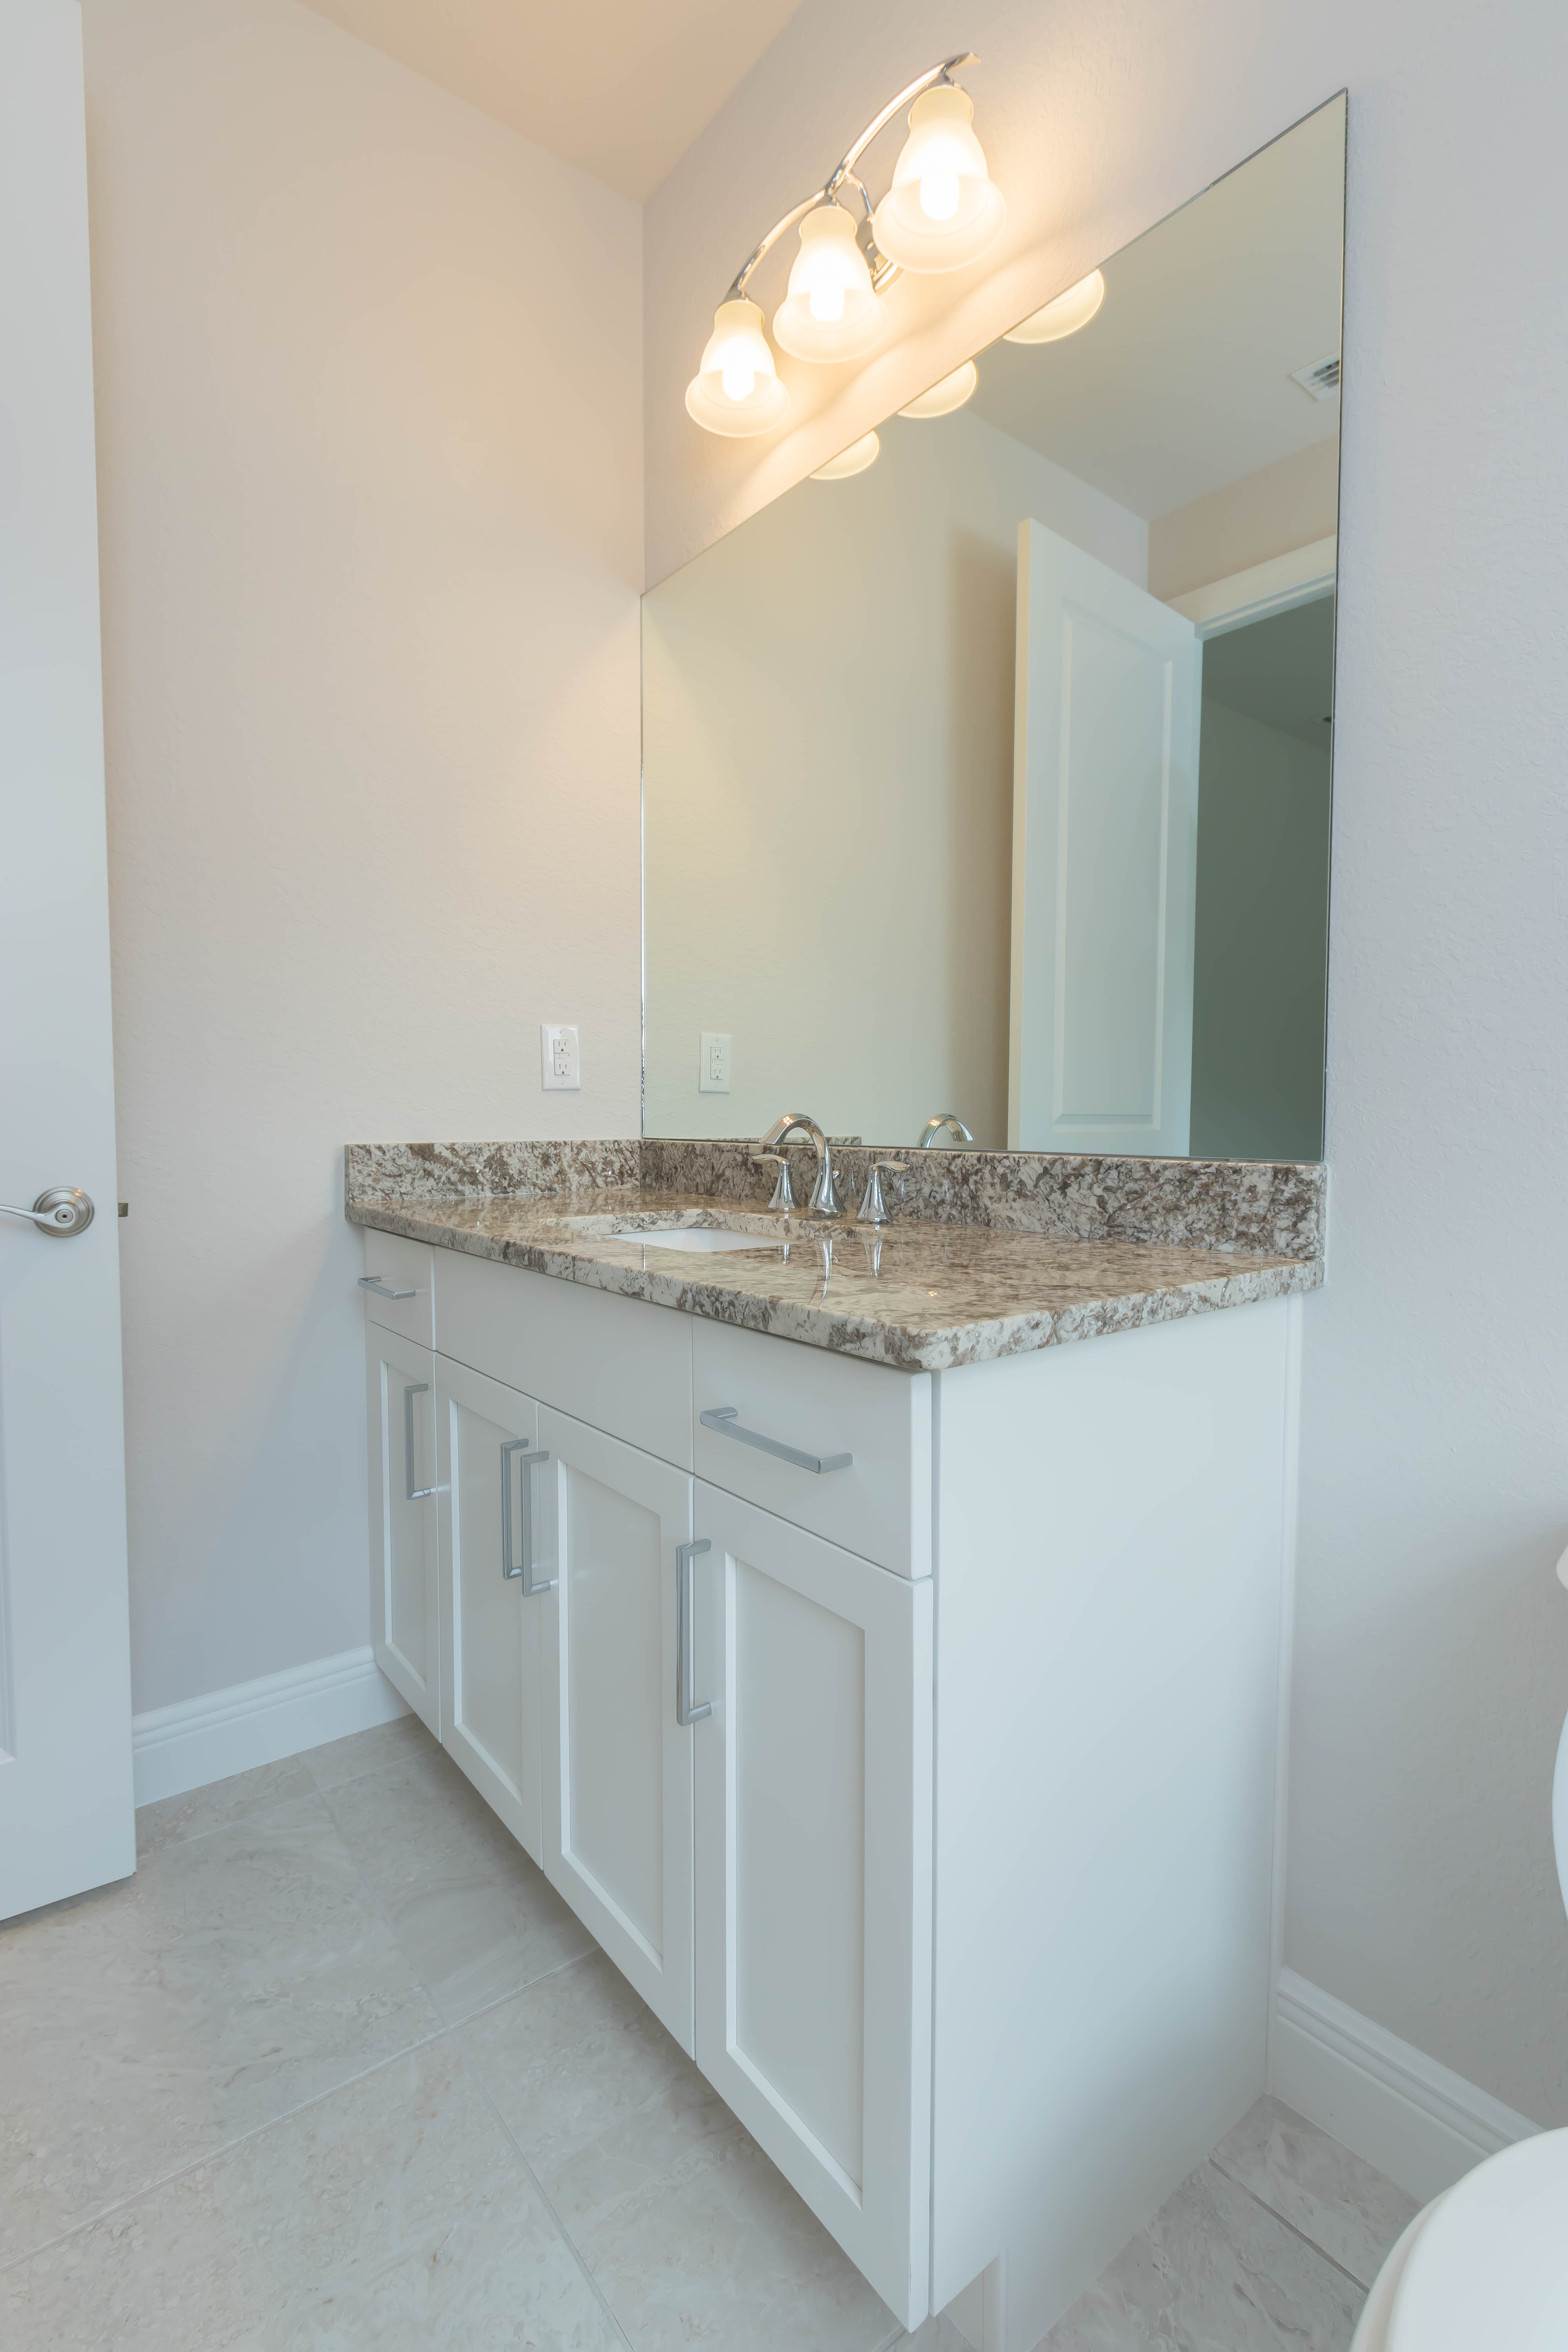 Serrano Cabinet Genies Kitchen And Bathroom Remodeling